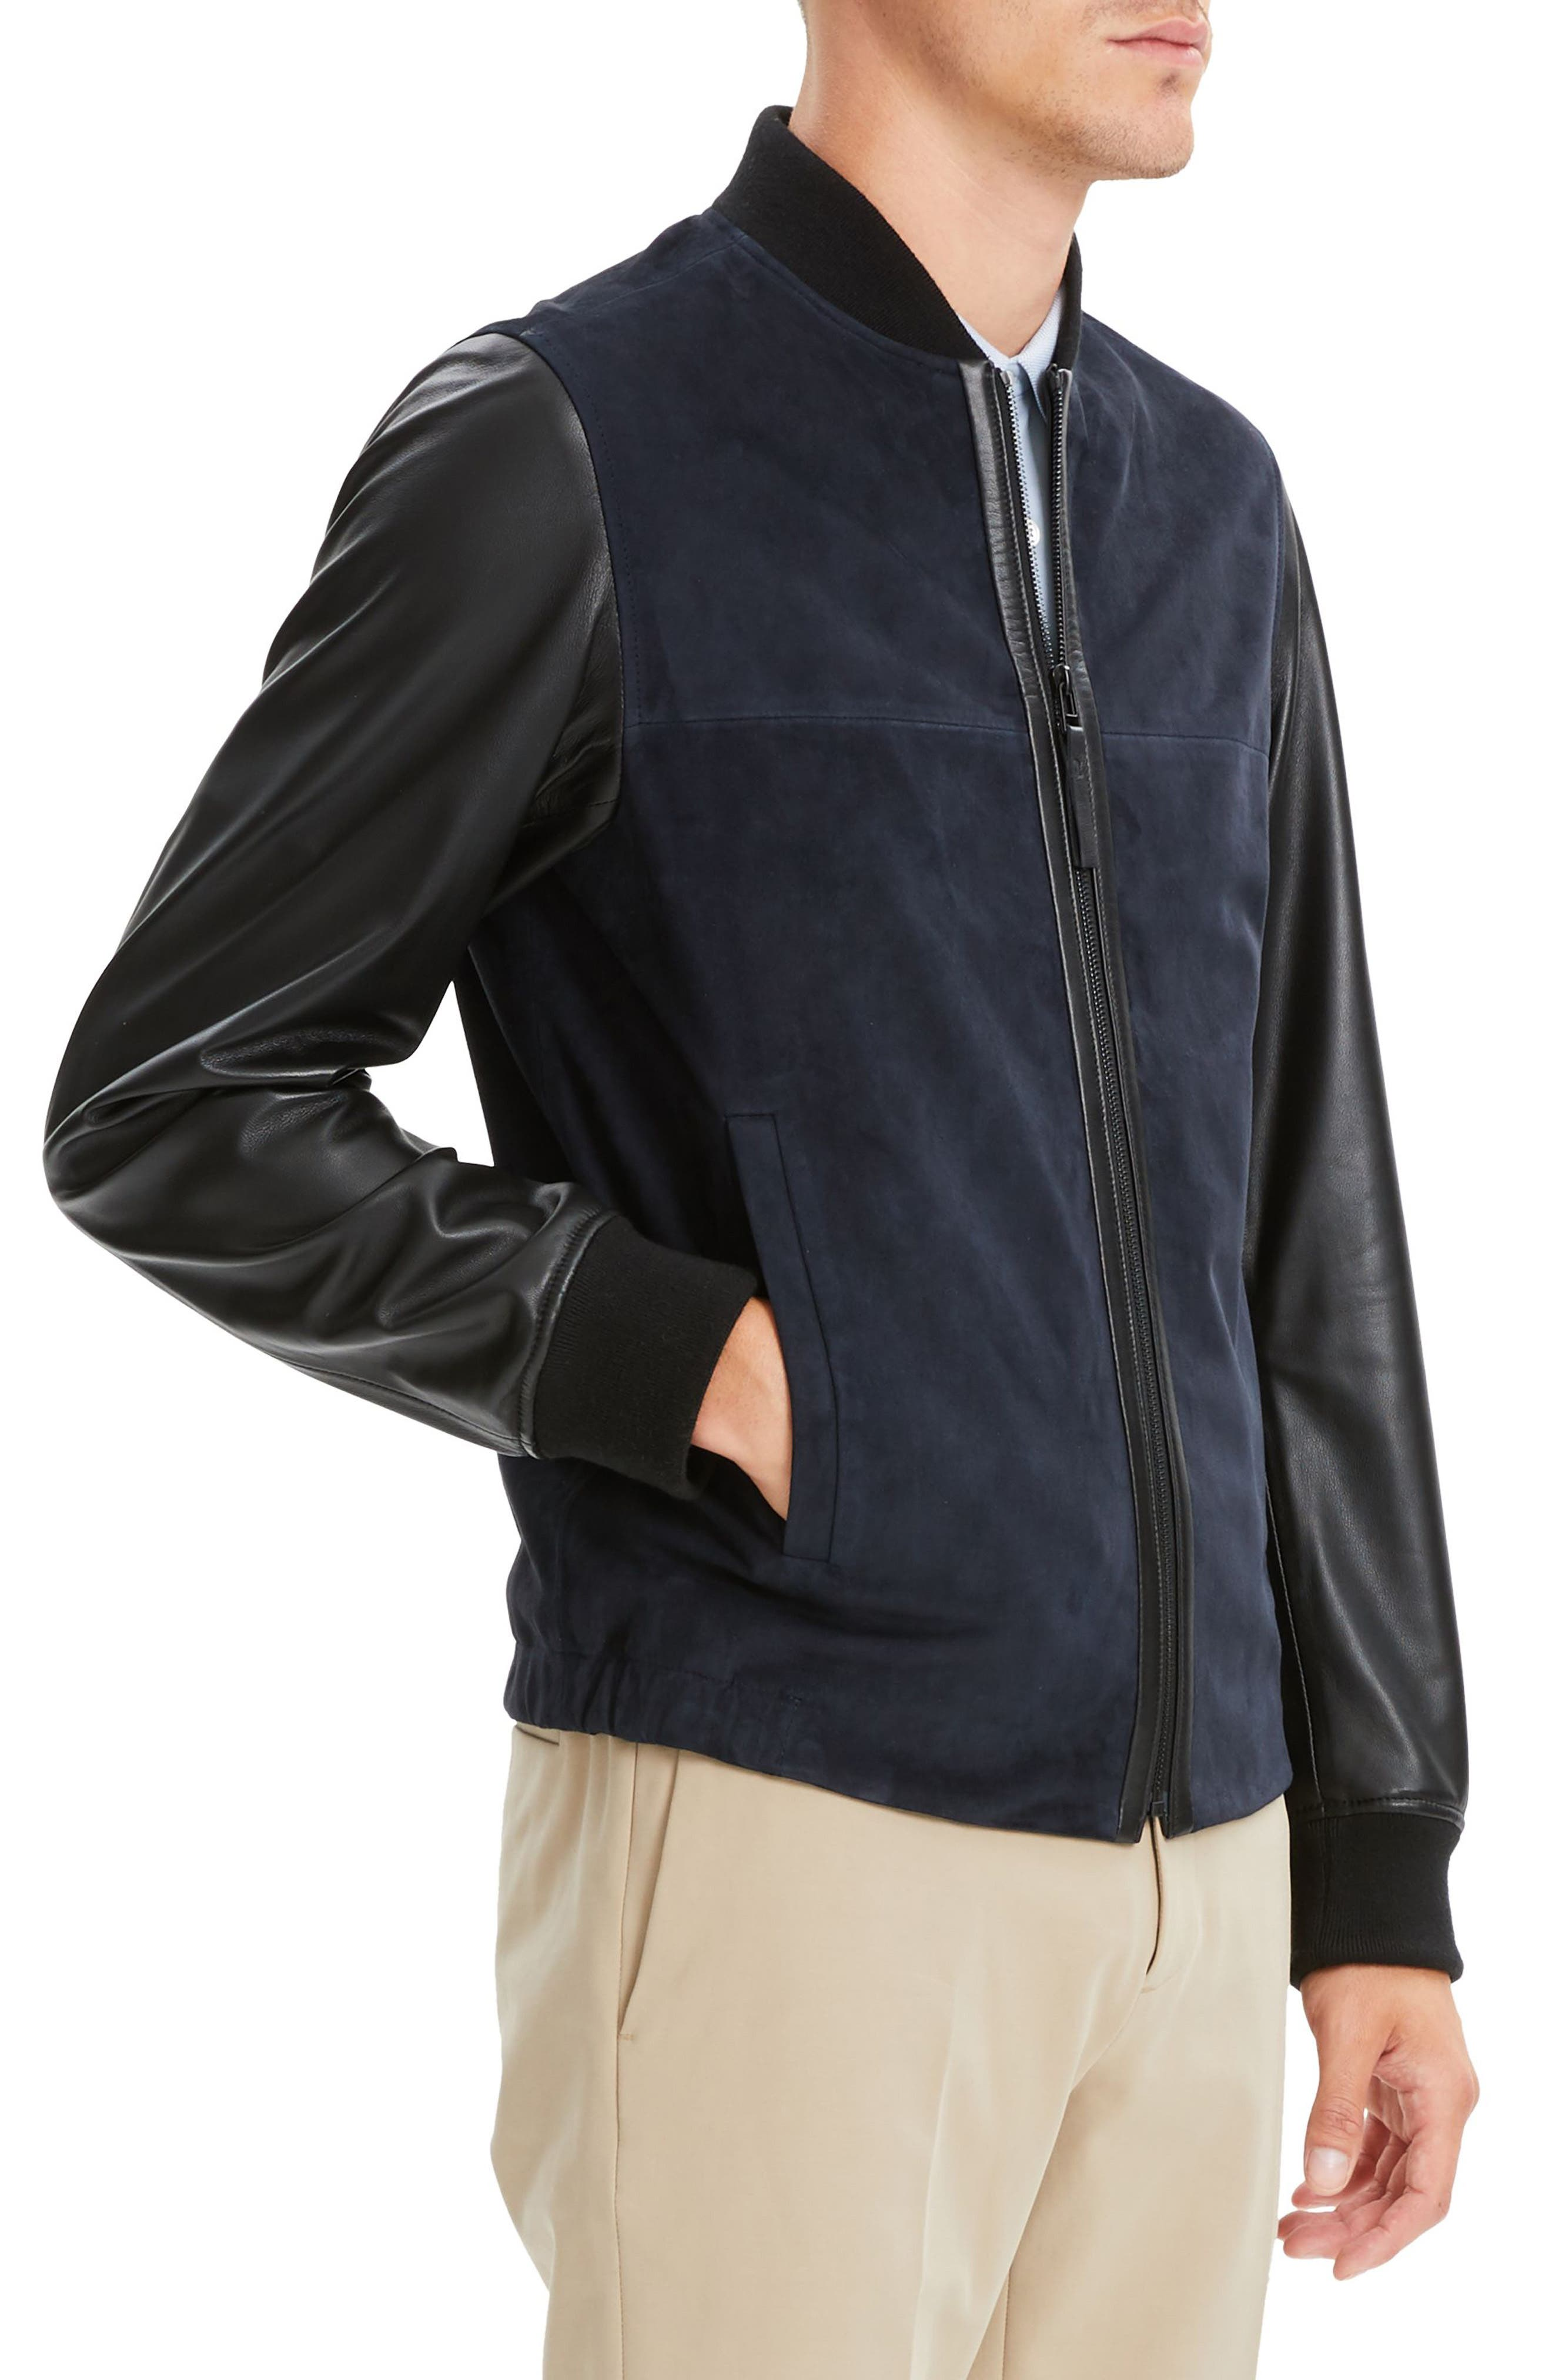 THEORY, Amir Regular Fit Suede & Leather Bomber Jacket, Alternate thumbnail 3, color, ECLIPSE/ BLACK